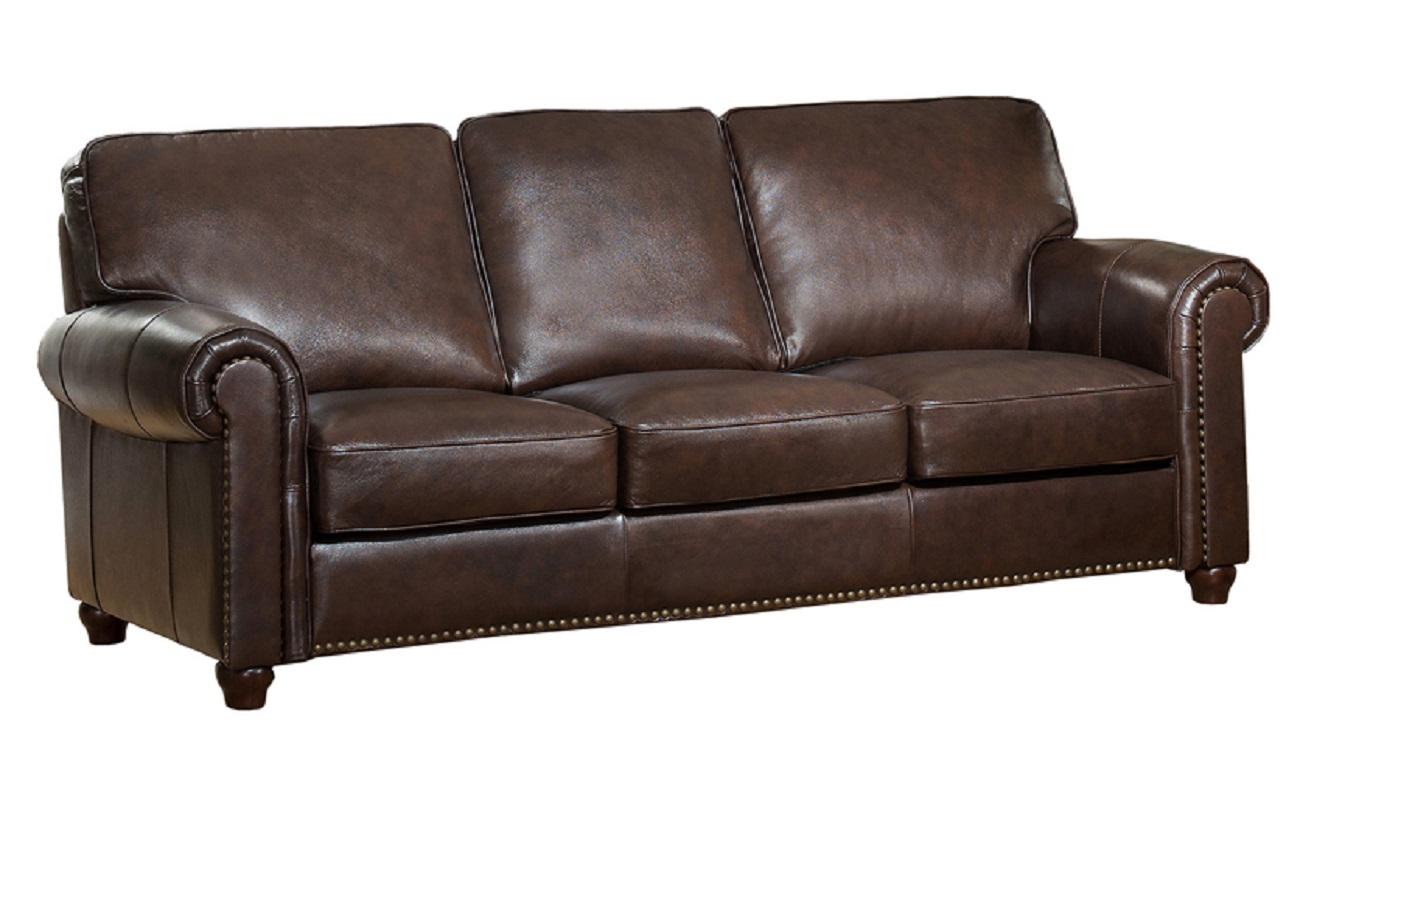 Jane Furniture Barbara Top Grain Dark Brown Leather Sofa Usa Furniture Online